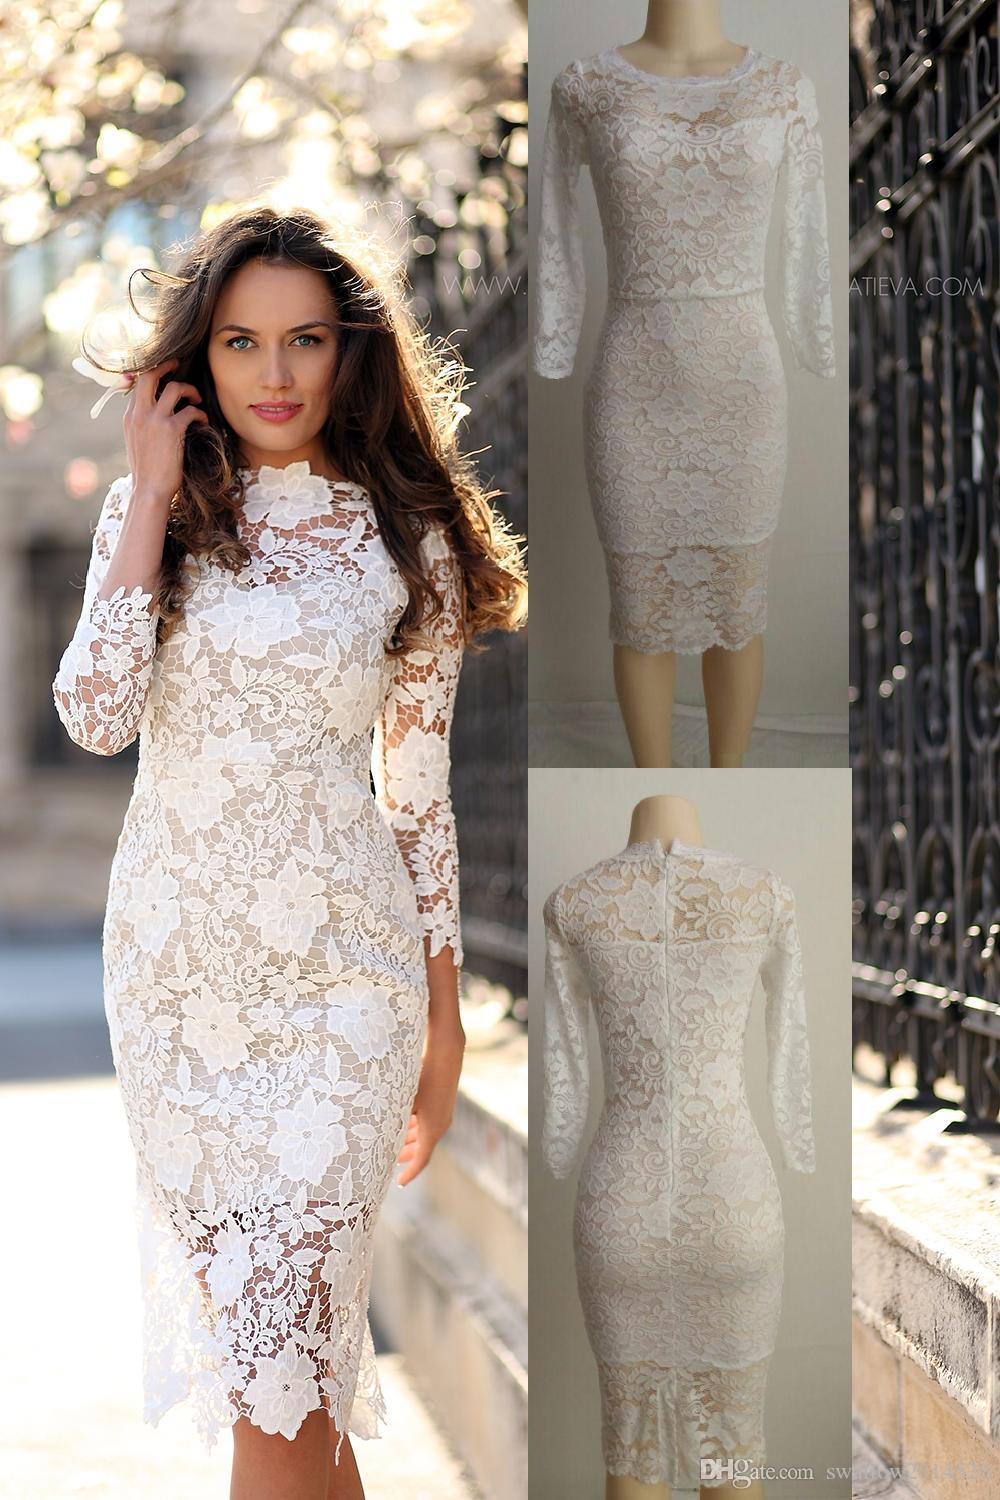 8f94b311b0d2 2017 Summer Women White Lace Dresses Bodycon Floral Crochet Lace Long  Sleeve Midi Elegant Sheath Pencil Party Dresses Silver Dresses Bride Dress  From ...